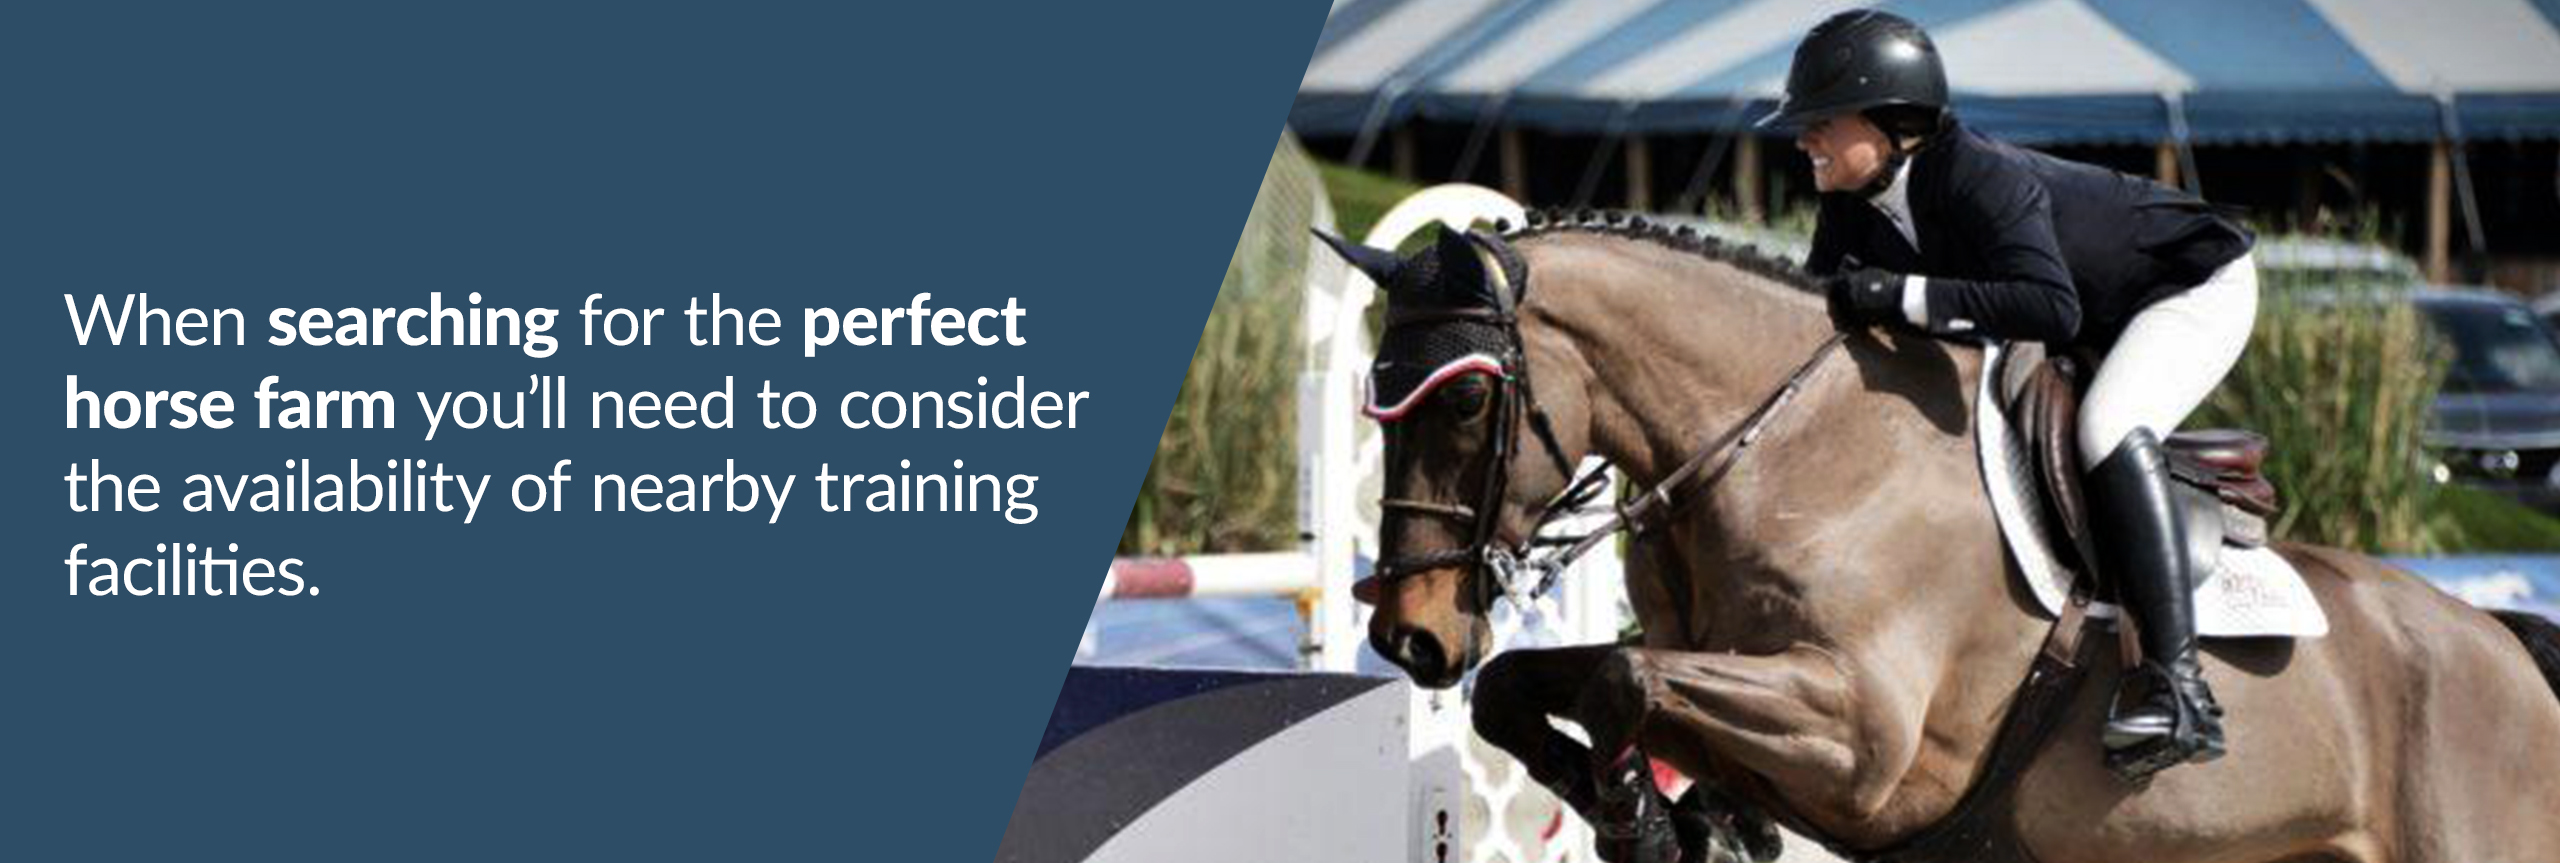 When searching for the perfect horse farm you will need to consider availability to nearby training facilities.